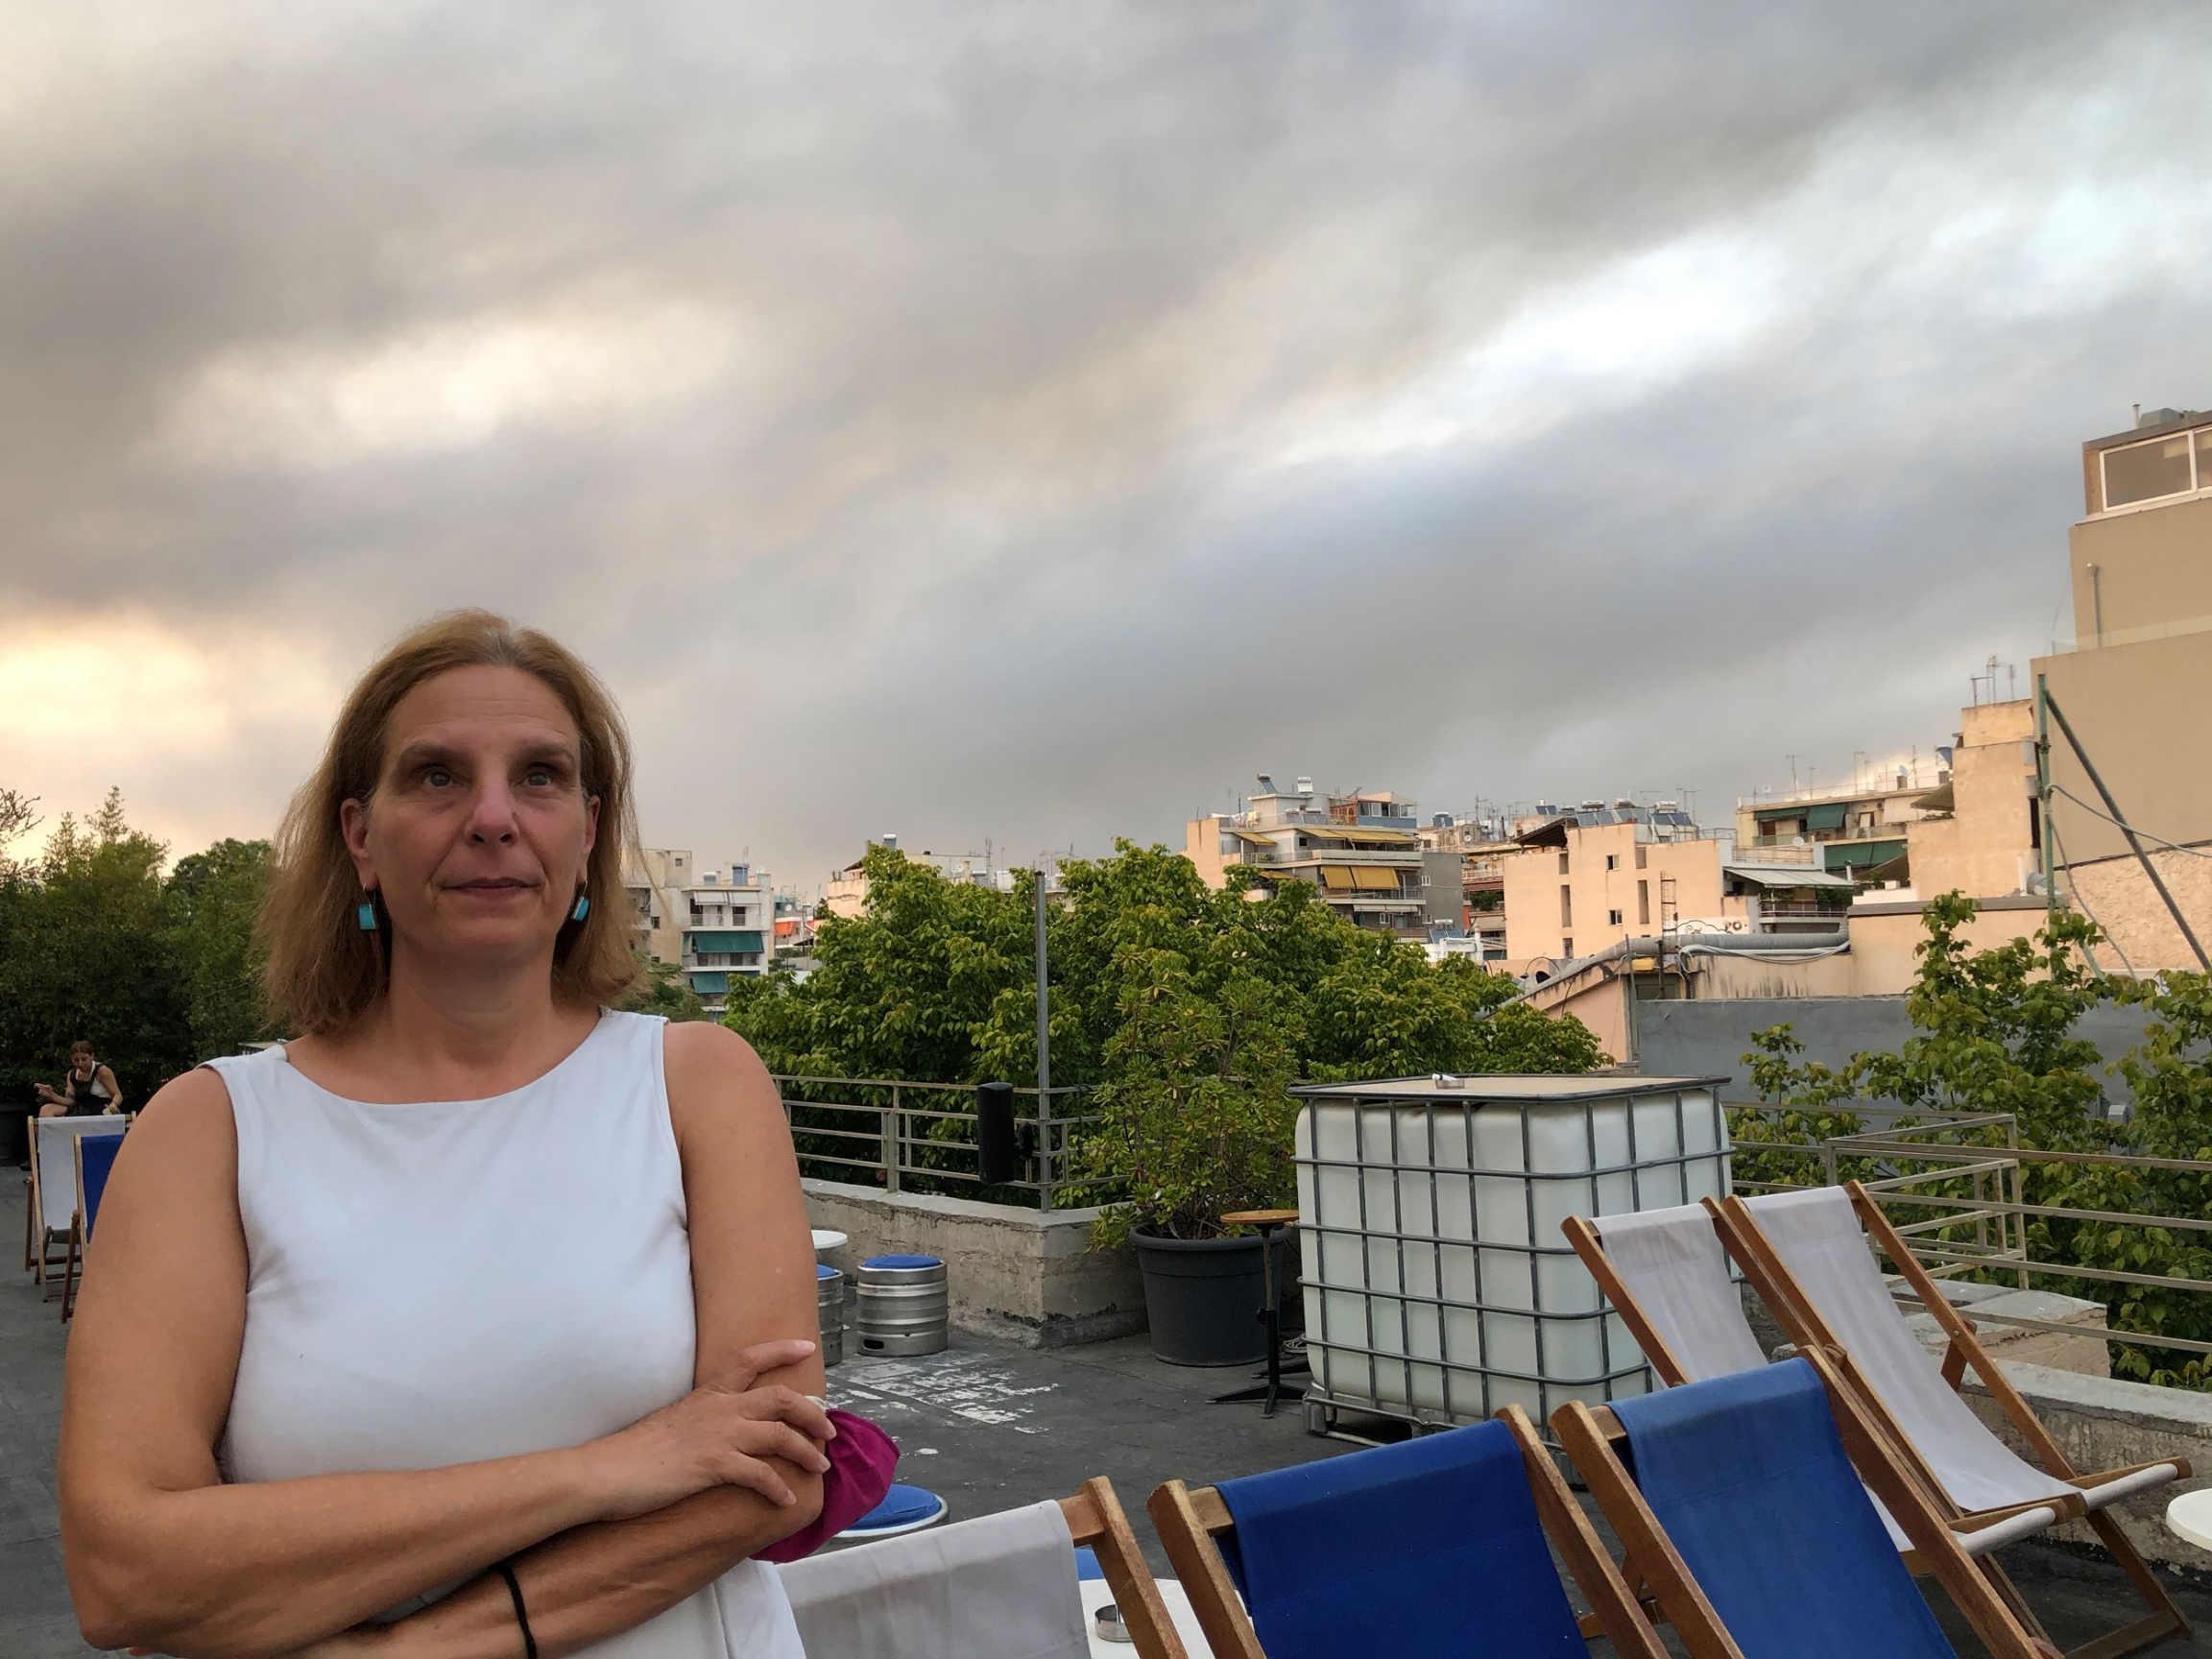 Eleni Myrivili is shown wearing a white sleeveless shirt while standing on a rooftop with the sky behind her filled with smoke clouds.